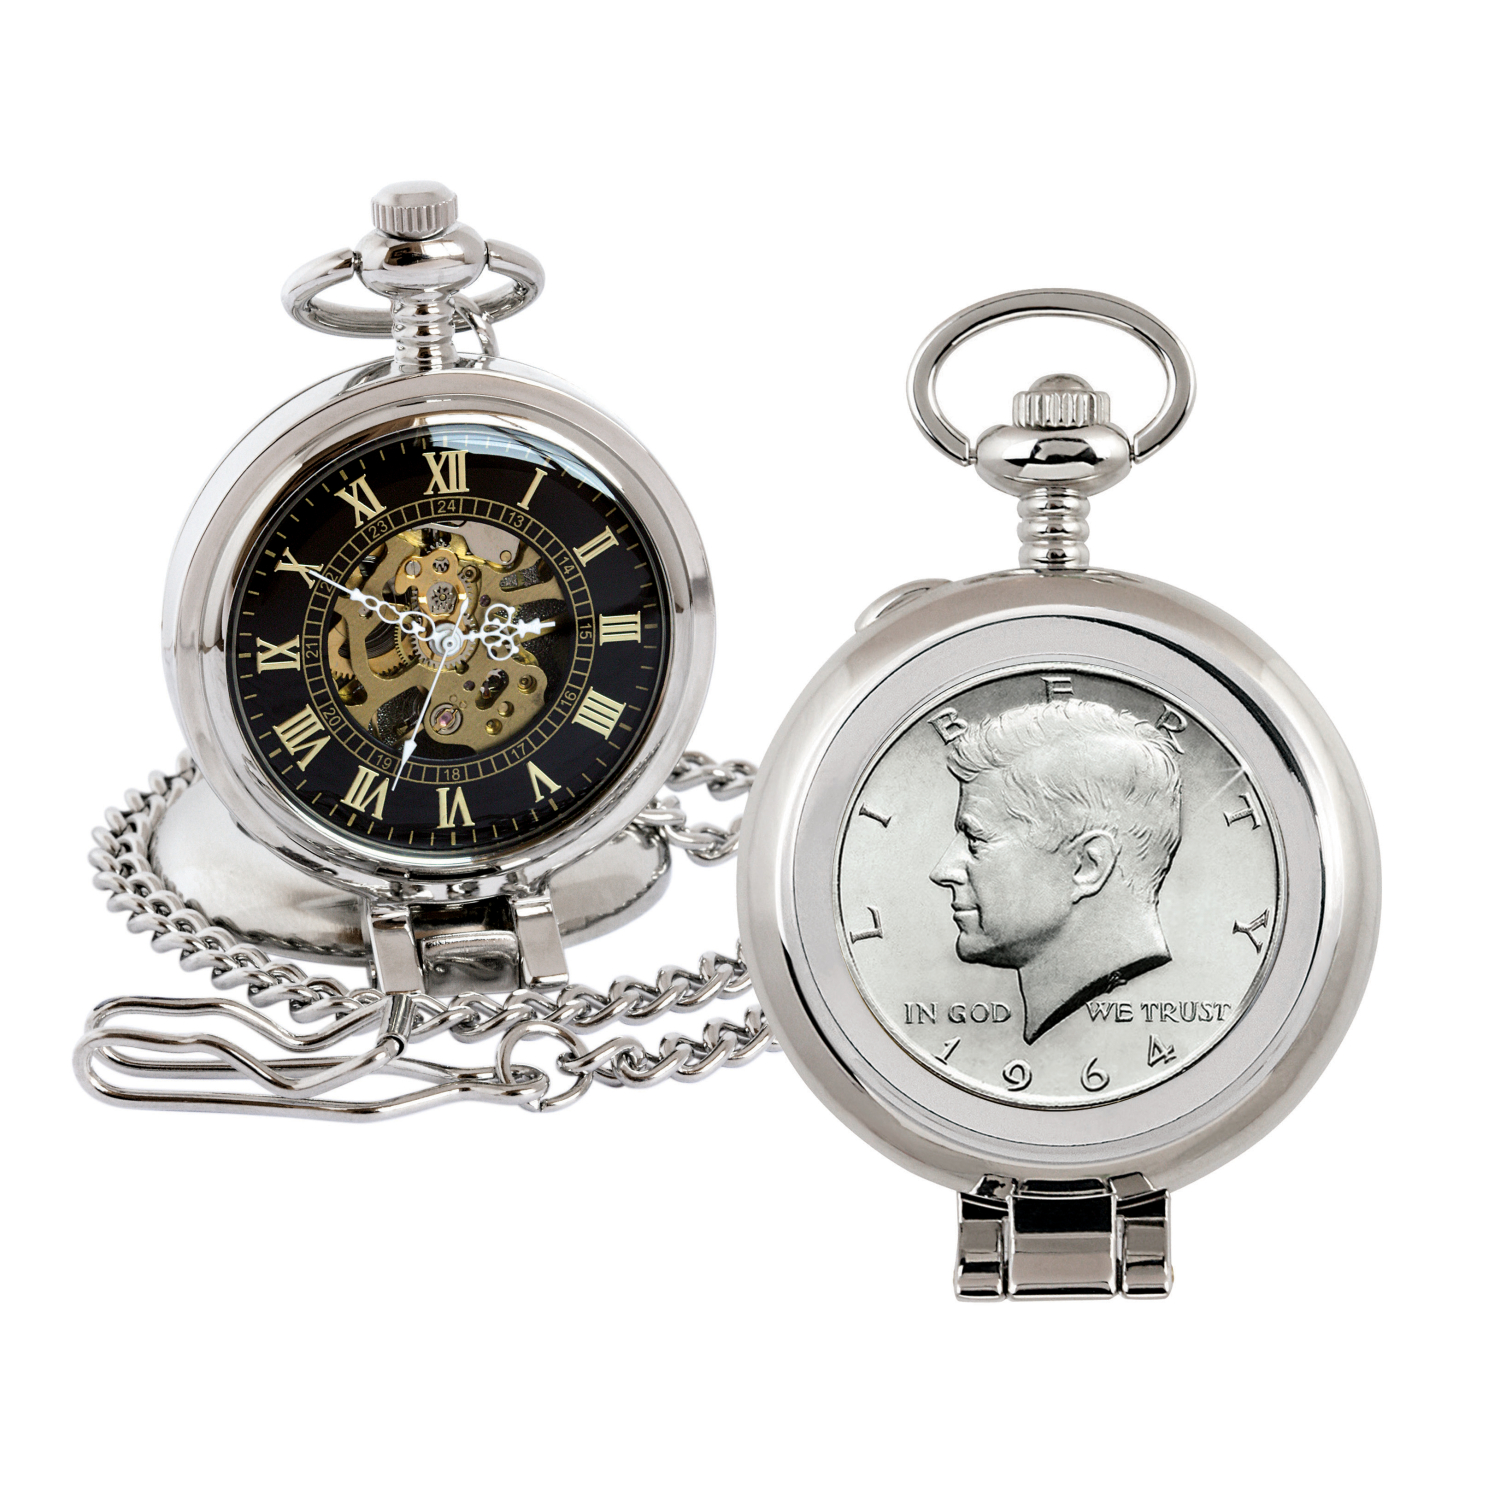 Jfk 1964 First Year Of Issue Half Dollar Coin Pocket Watch With Skeleton Movement - Black Dial With Gold Roman Numerals